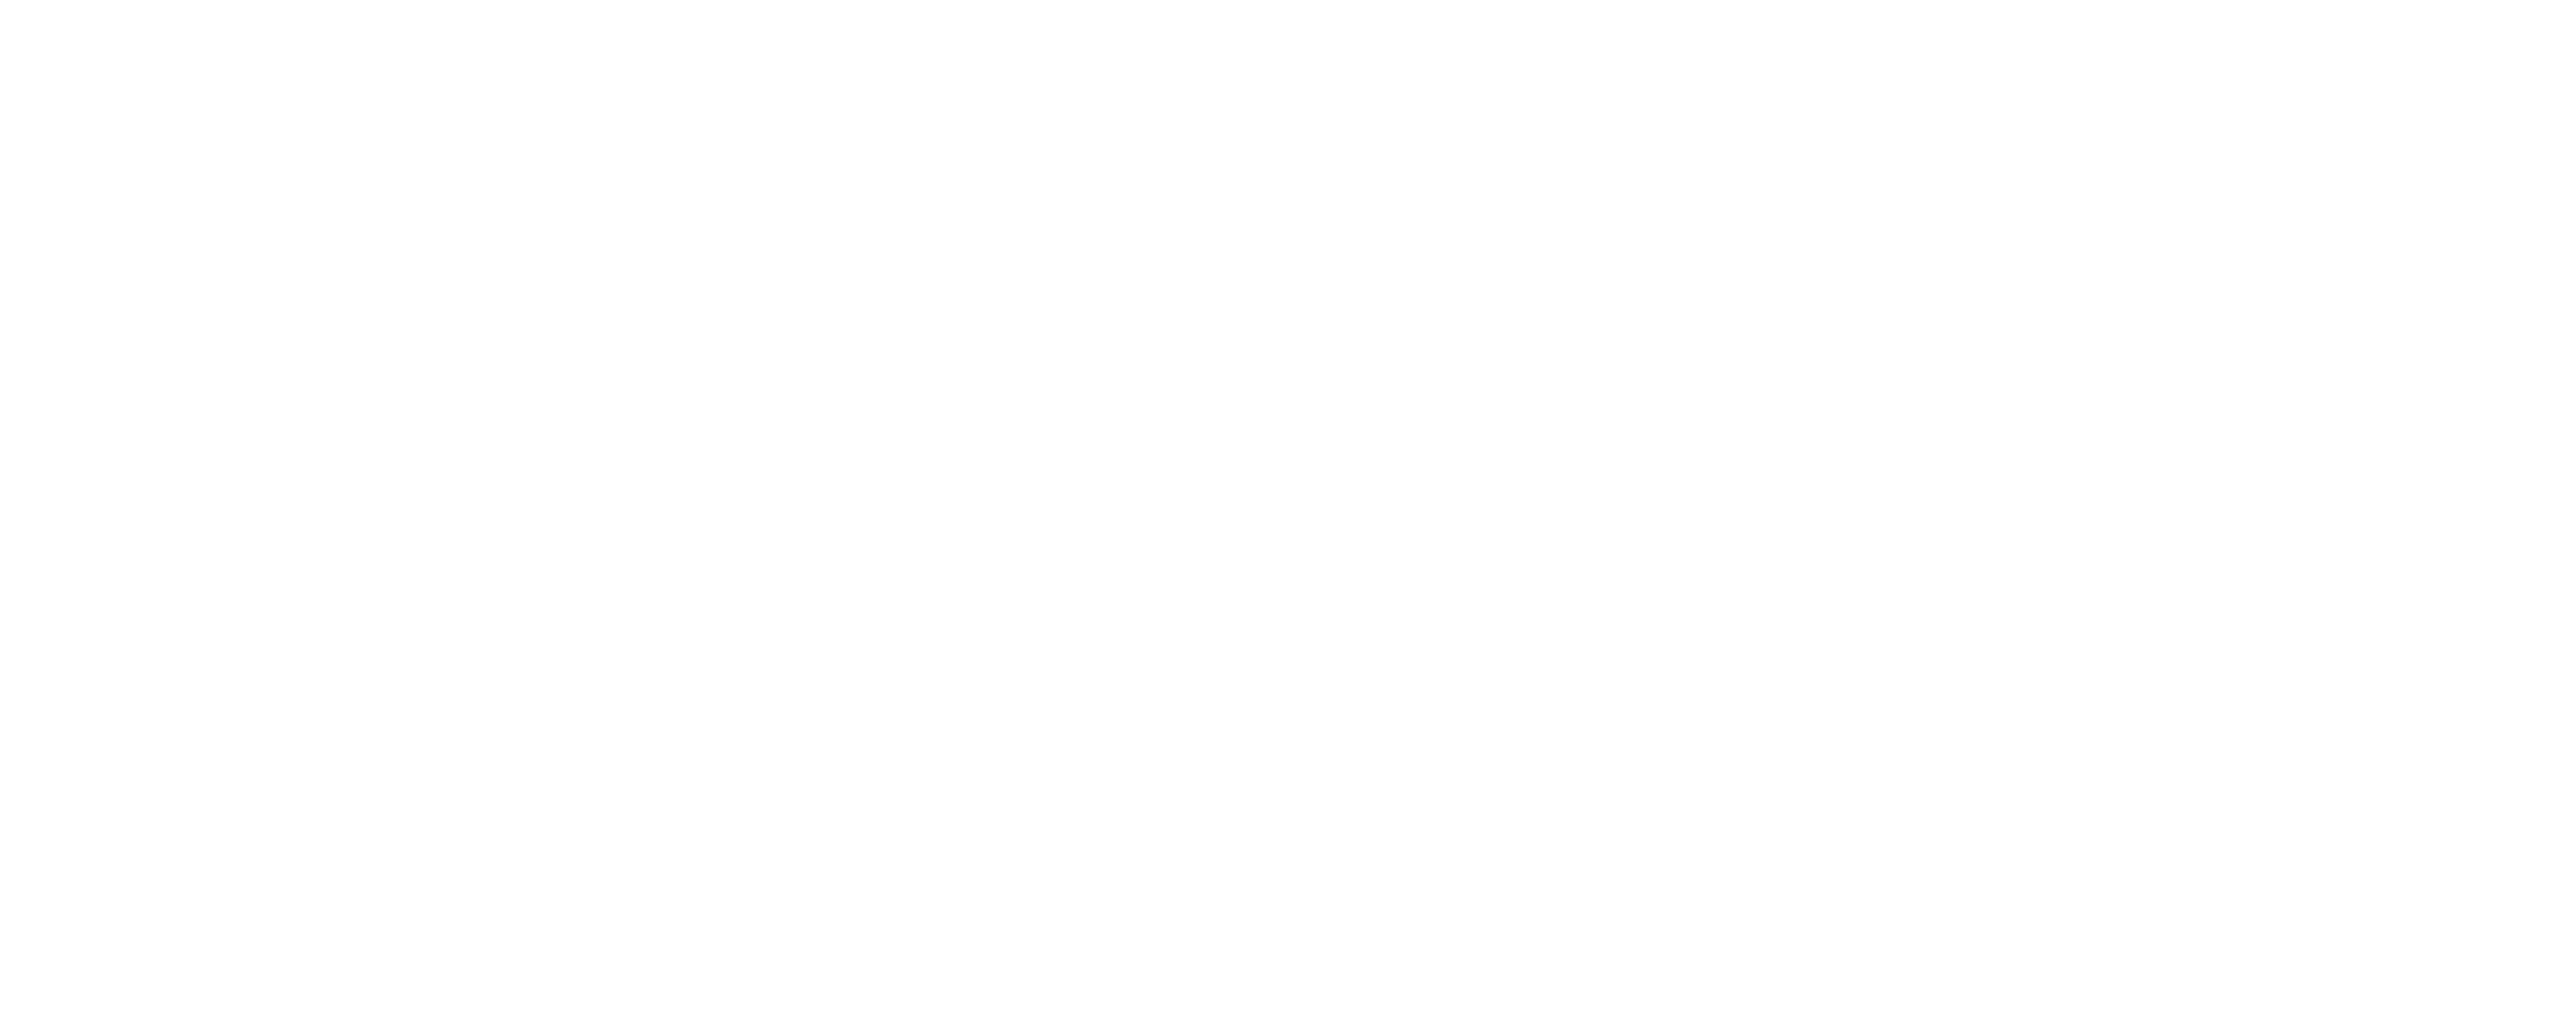 Black lace png. And white pattern decorative